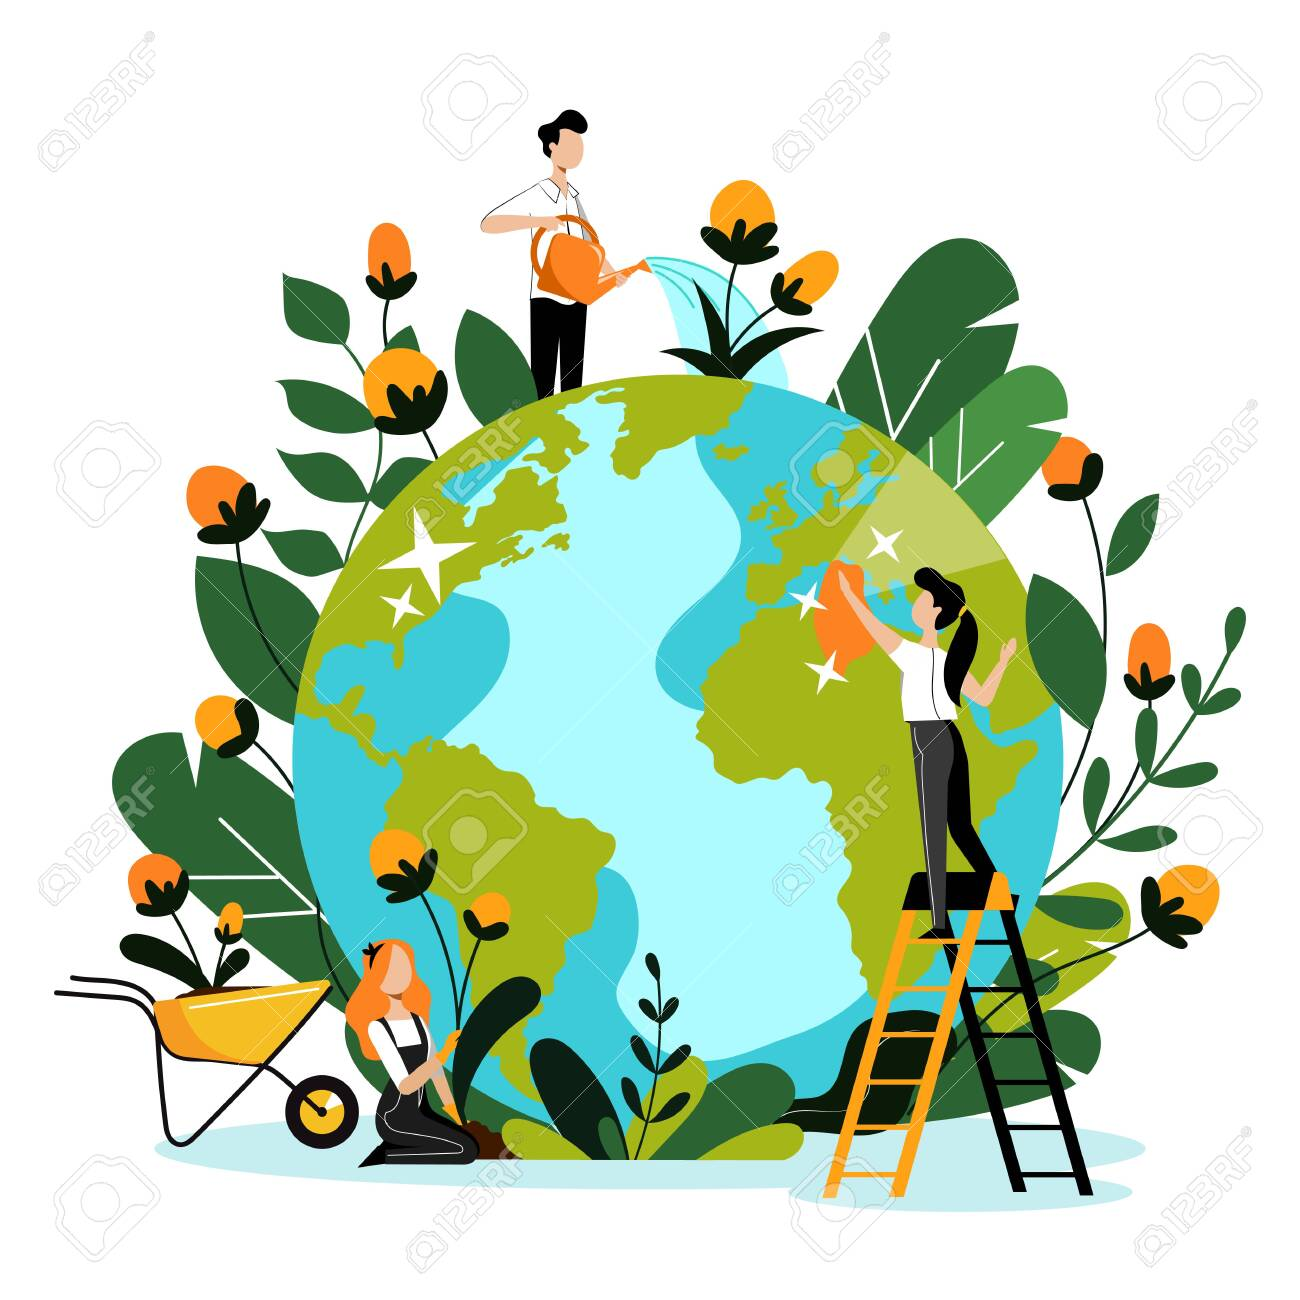 Environment, ecology, nature protection concept. Young volunteers take care of Earth planet and environmental nature. Vector flat cartoon illustration. People cleaning, watering and planting flowers. - 131429861